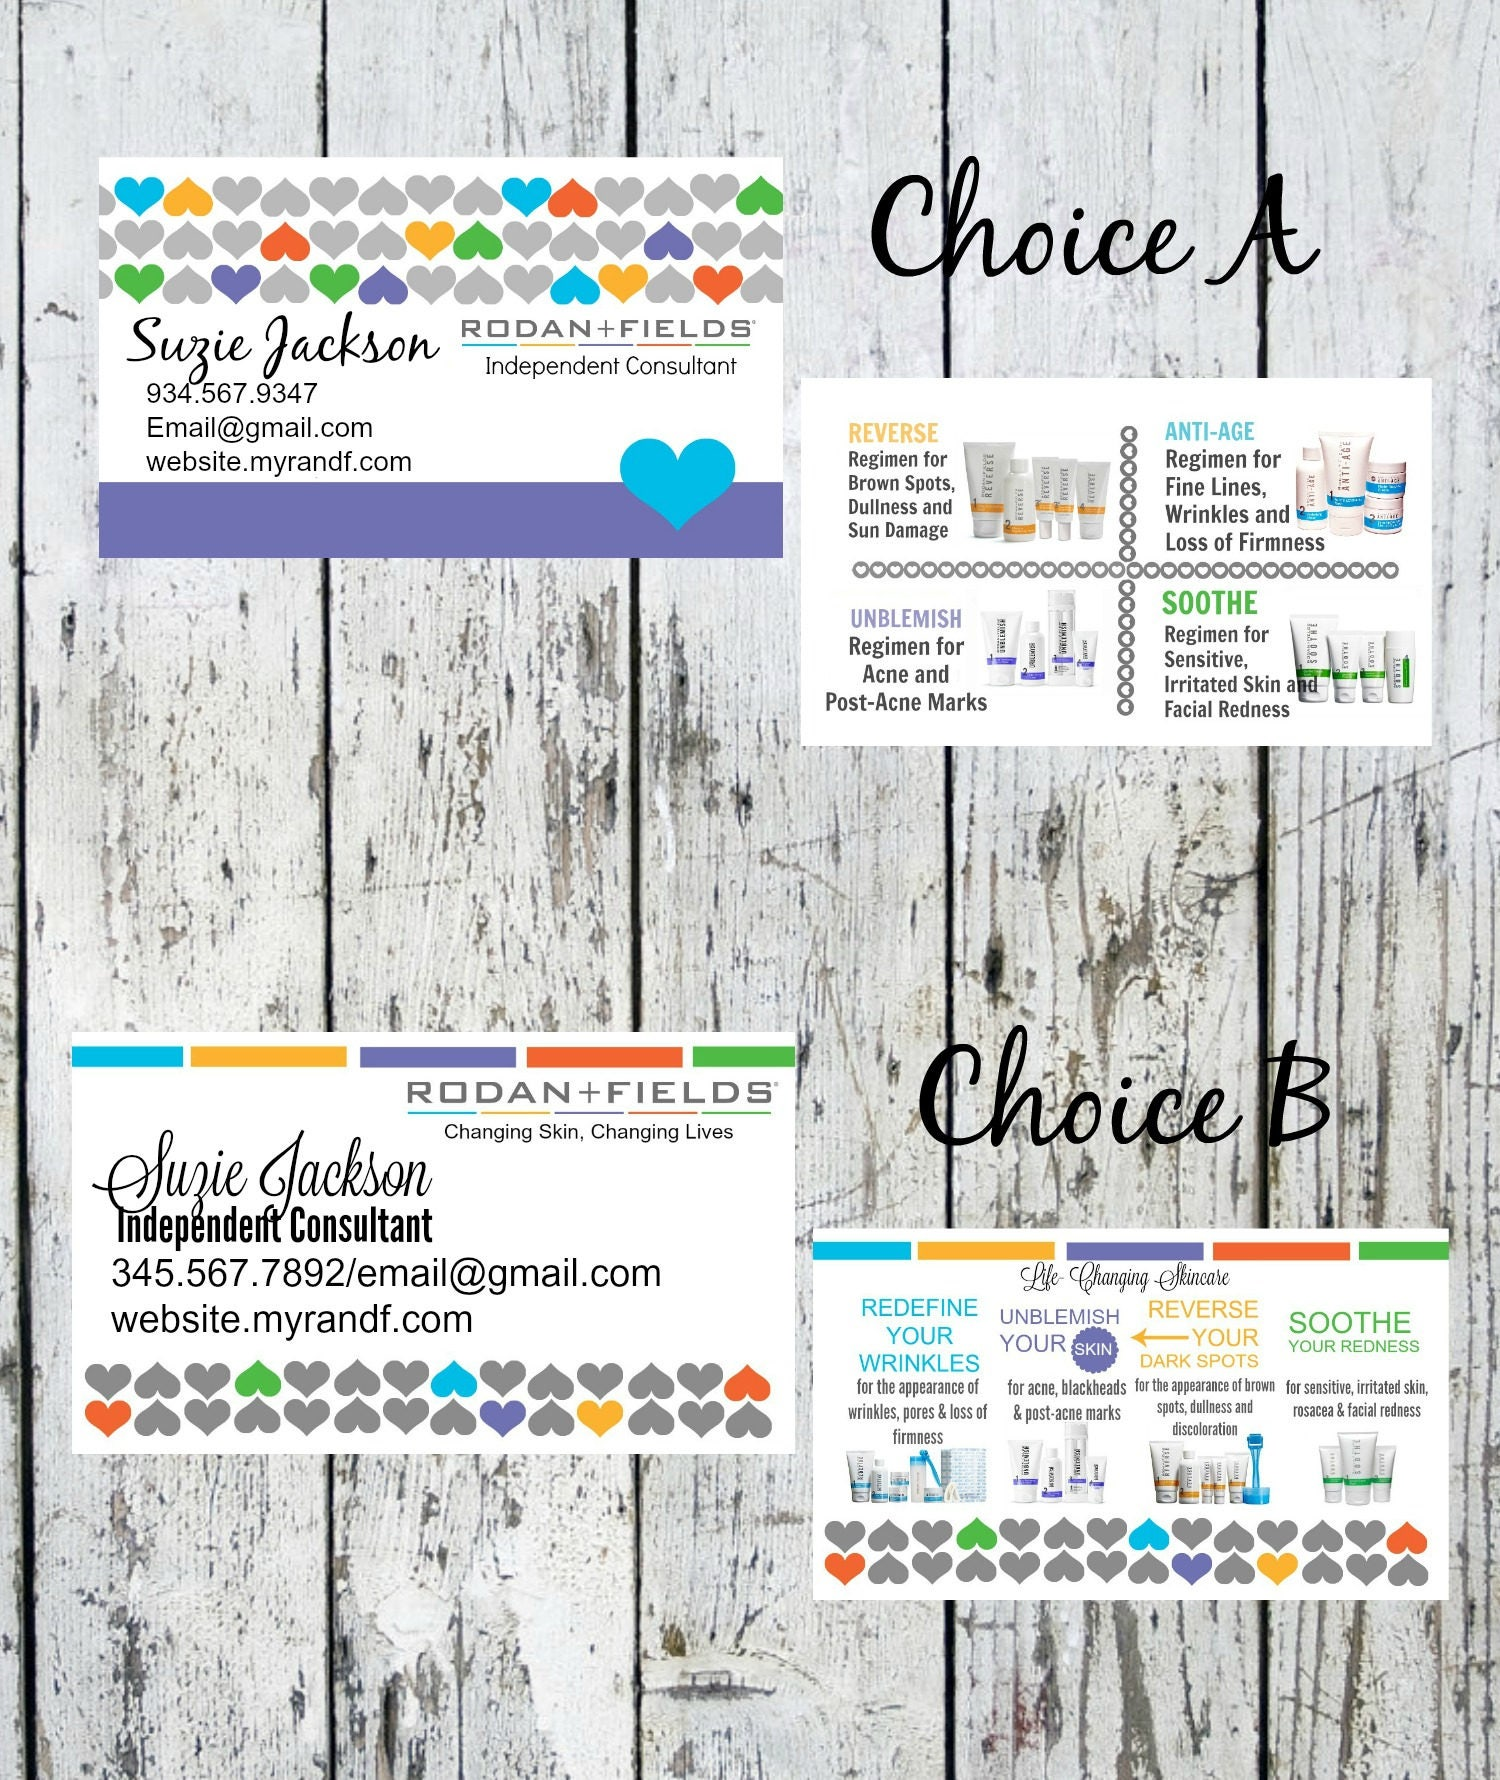 Rodan & Fields Business Cards Your Choice A or B Your